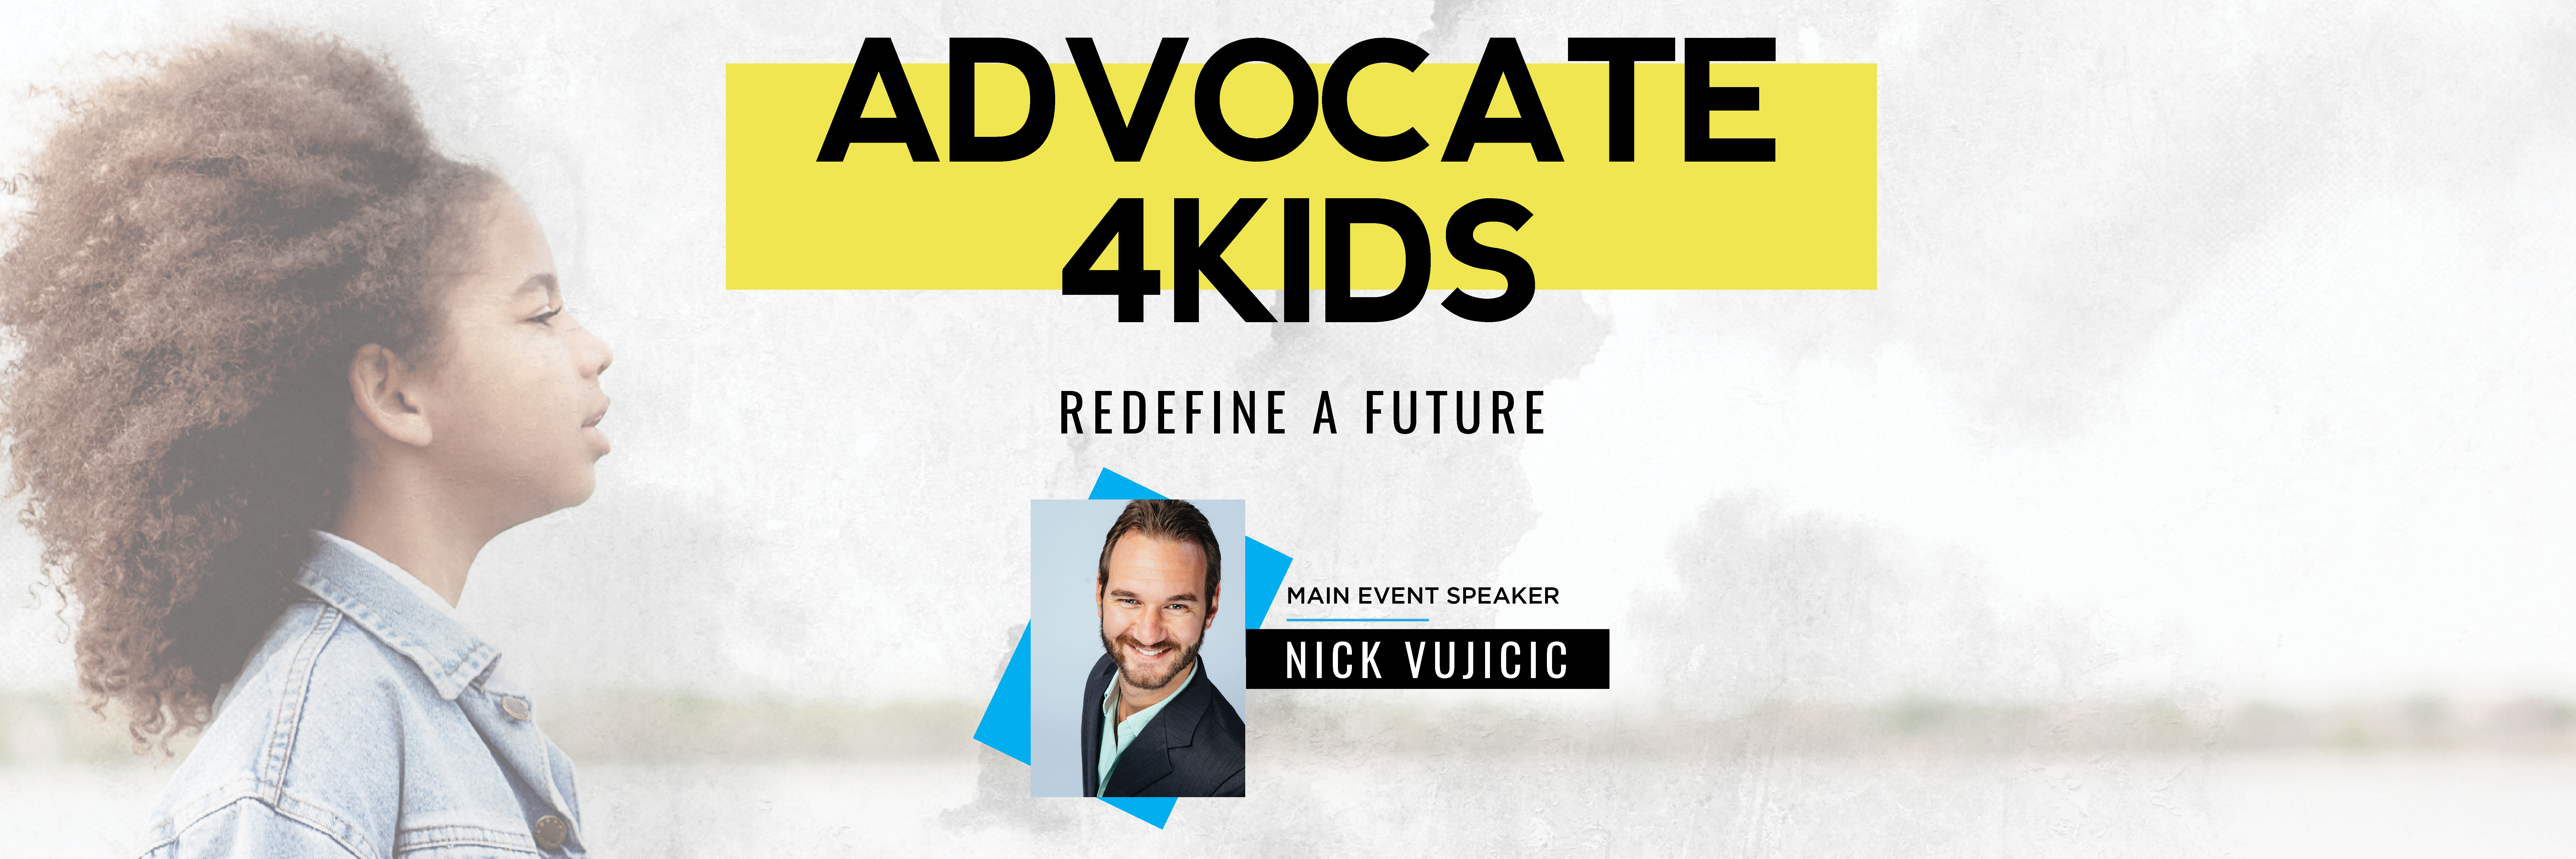 Advocate 4KIDS with Nick Vujicic